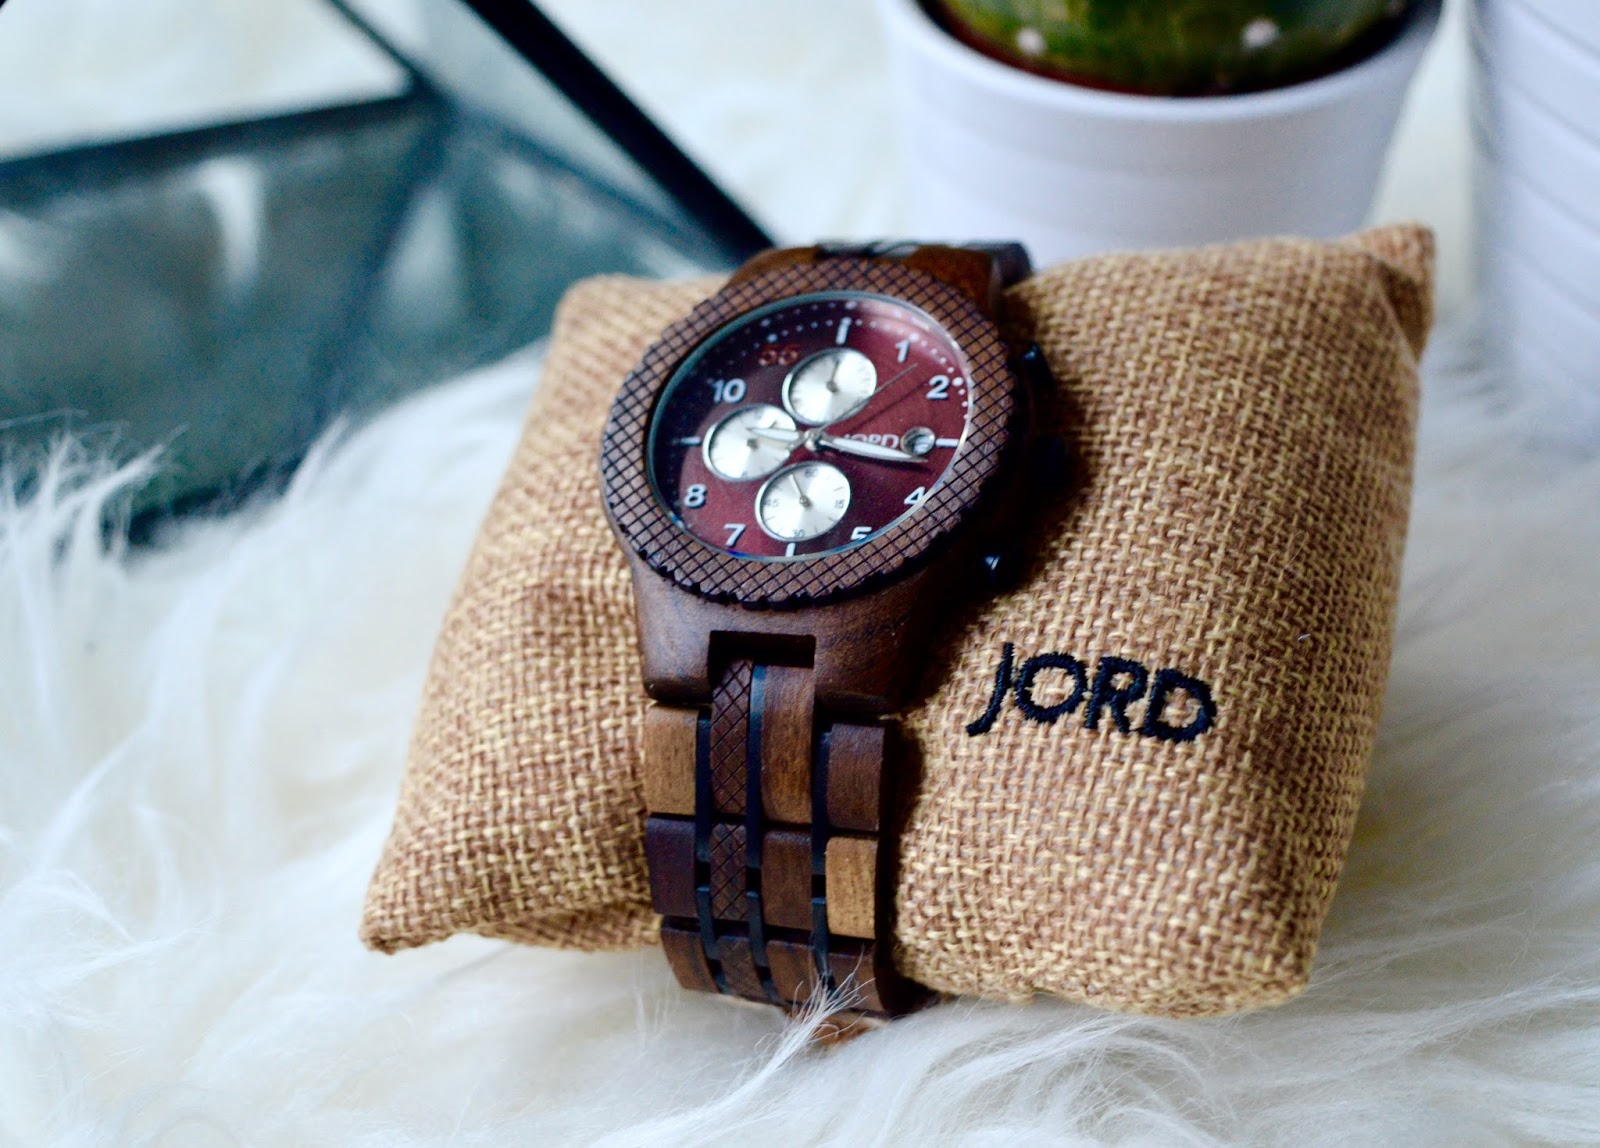 Conway JORD watch